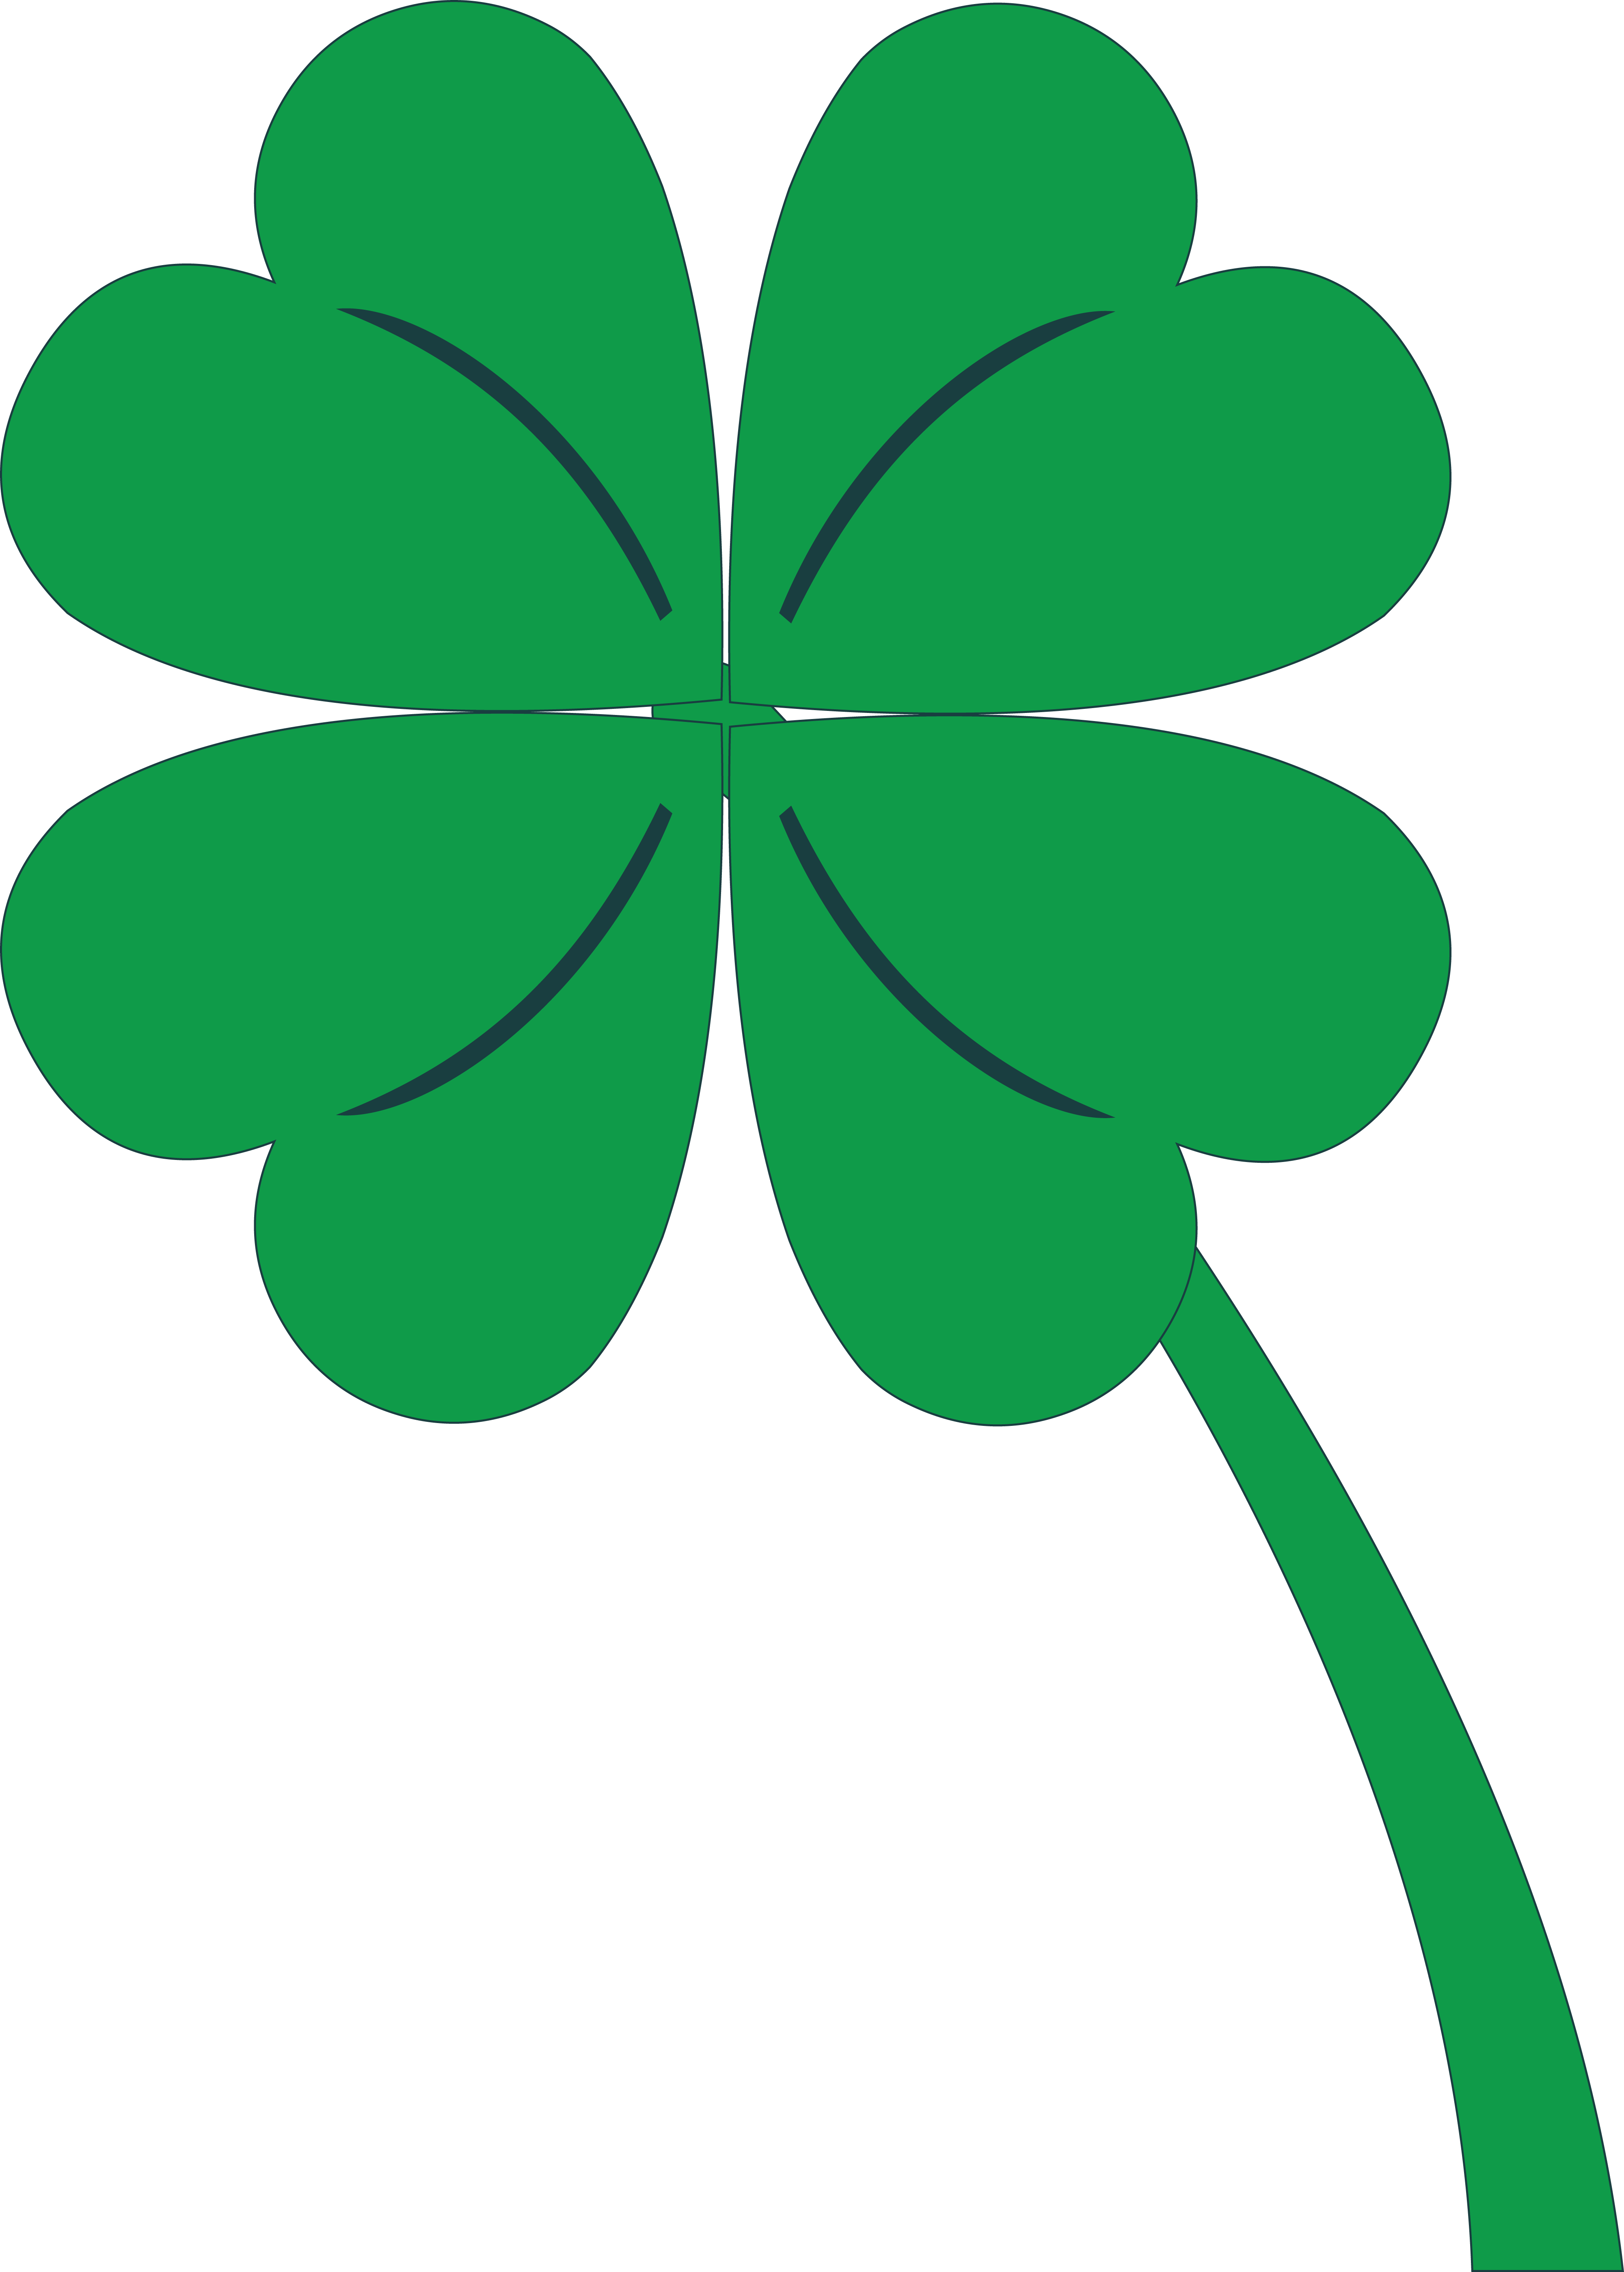 207 free clipart of a st paddys day 4 leaf clover shamrock png 4 000 rh pinterest com 4 leaf clover clipart black and white 4 leaf clover clipart free